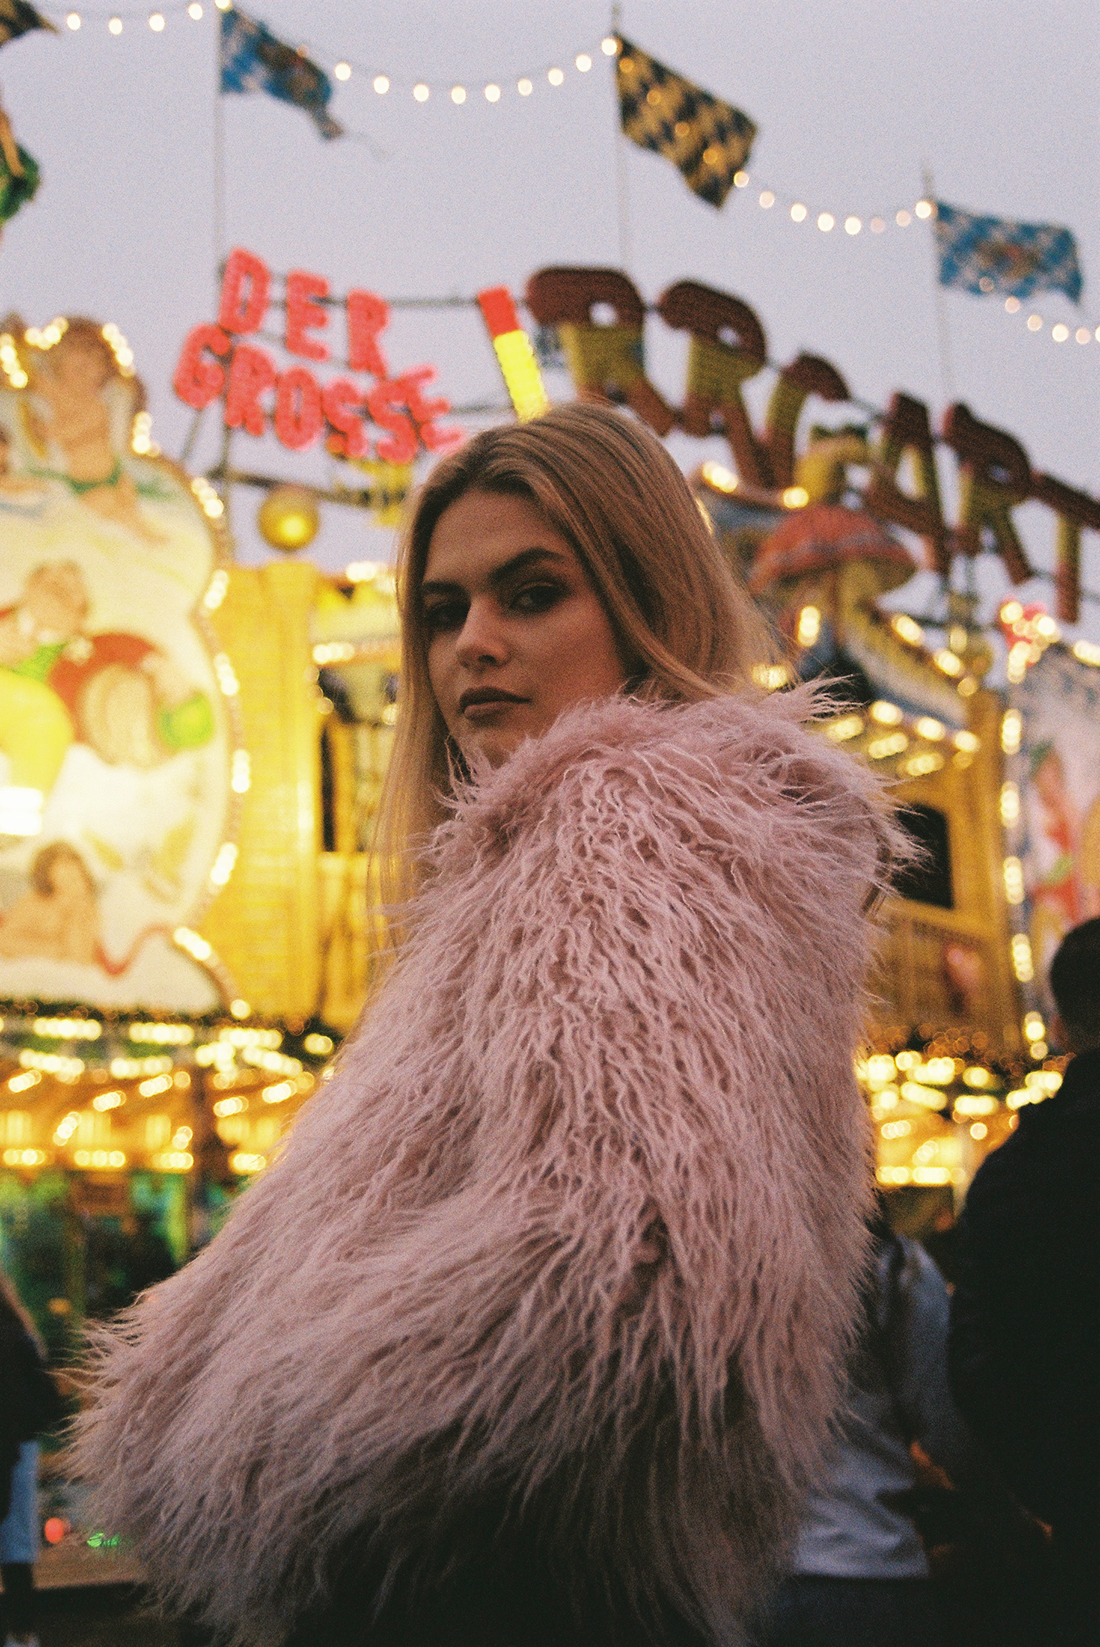 35mm film test portrait in Winter Wonderland with Manon @ The Squad by London photographer Ailera Stone (Aistė Tiriūtė)